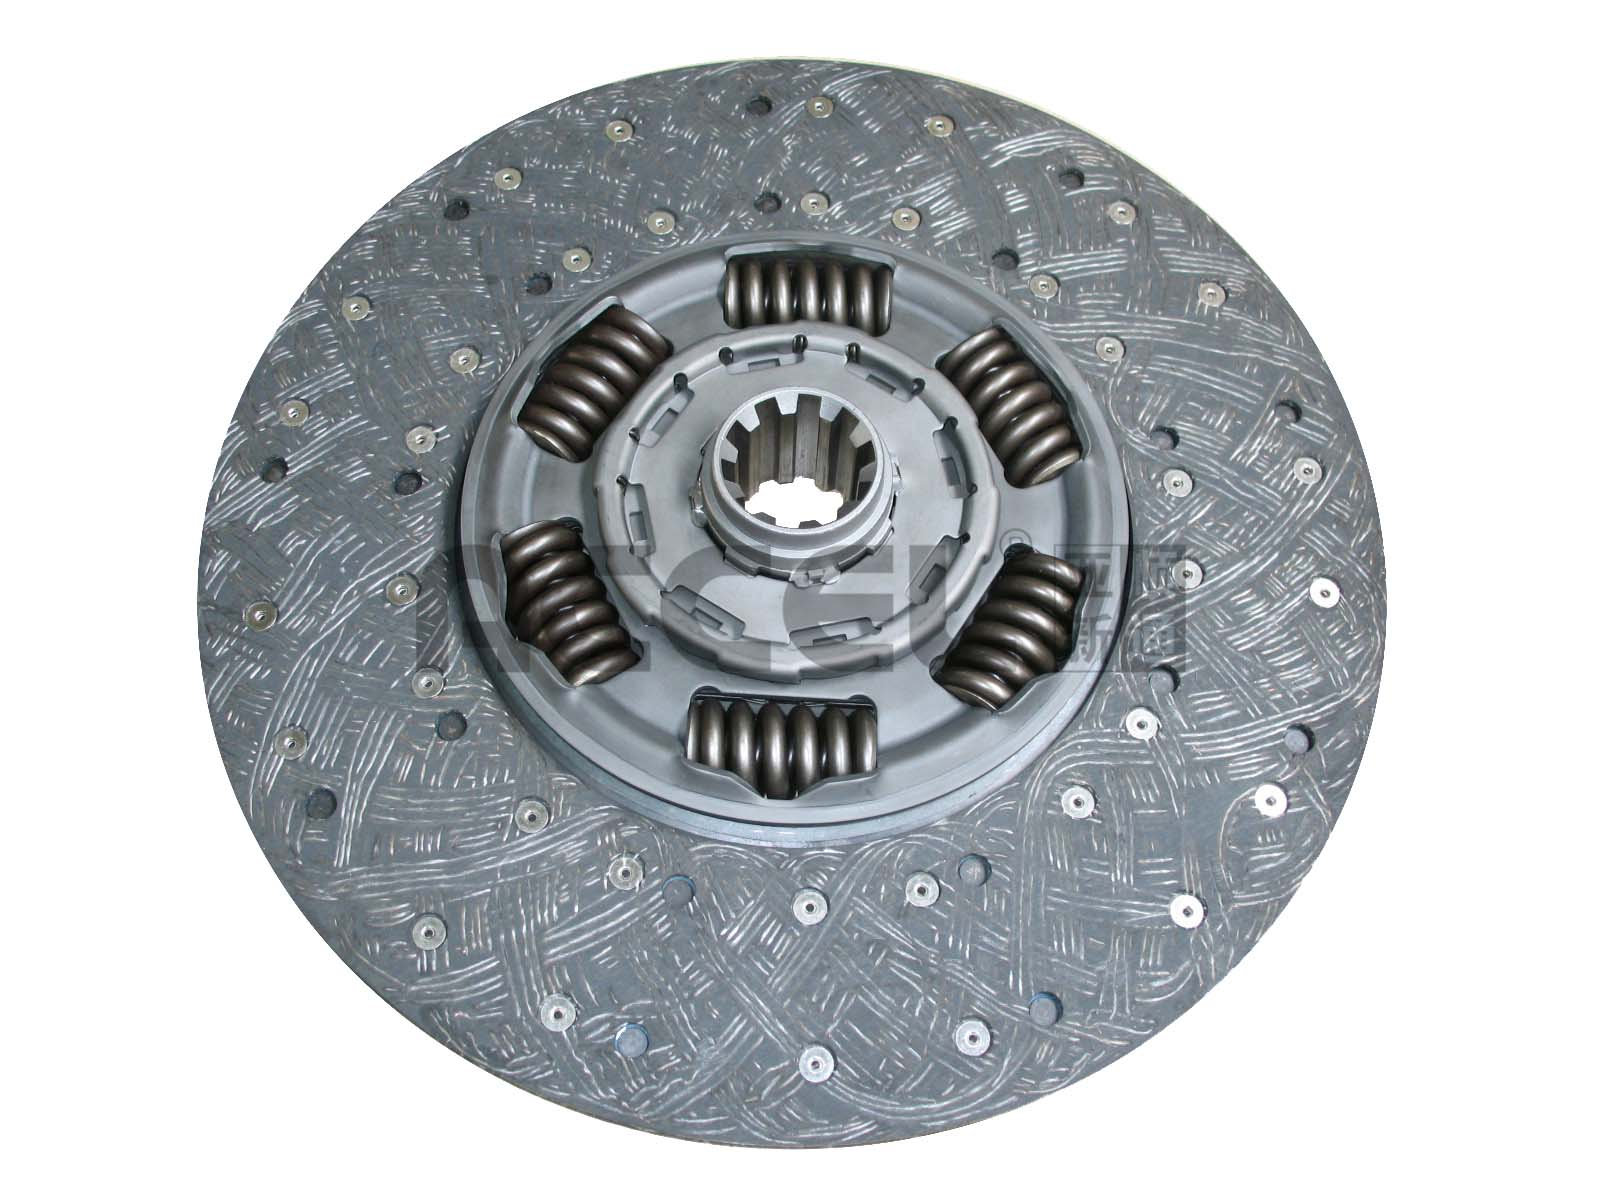 Clutch Disc/OE:4202 2207